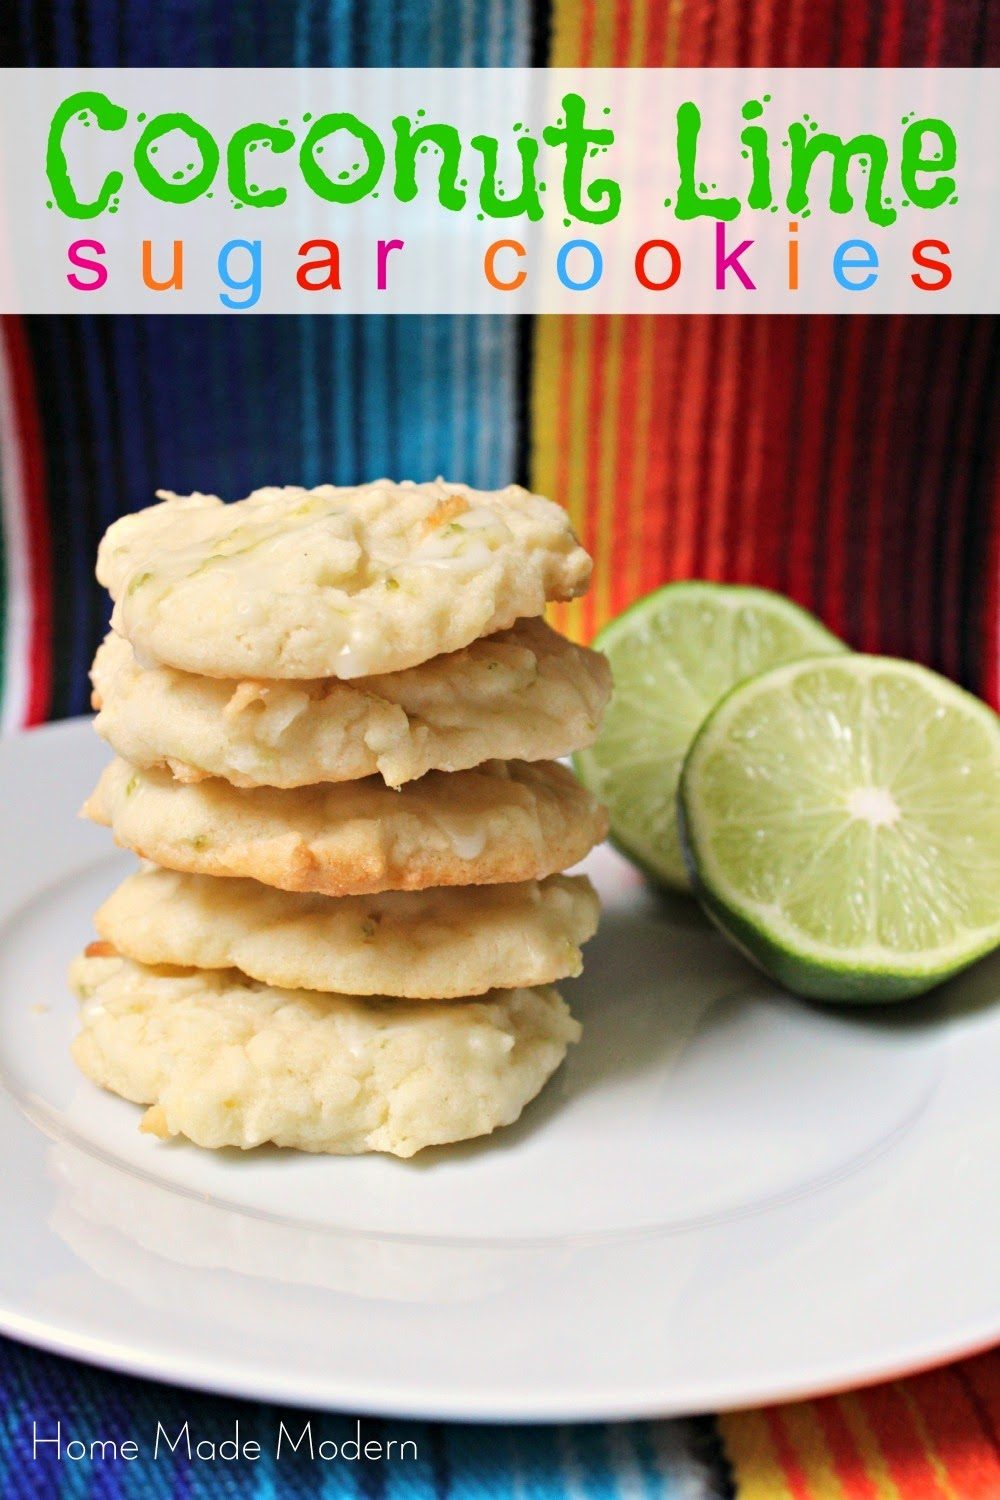 Home Made Modern: 5-Ingredient Coconut Lime Cookies